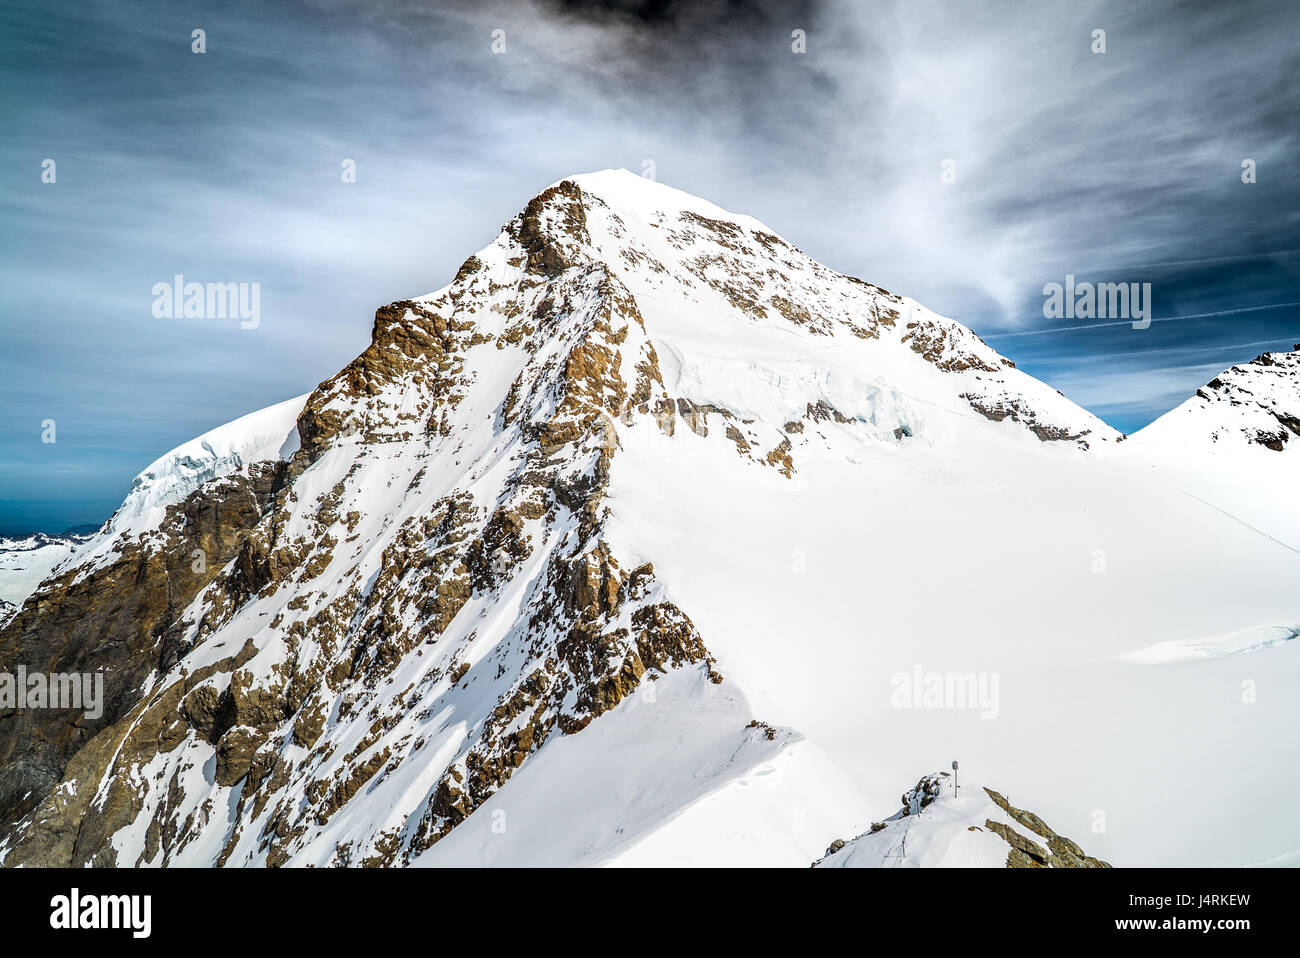 Jungfrau, the highest point in Europe and the most iconic mountain in Switzerland. - Stock Image